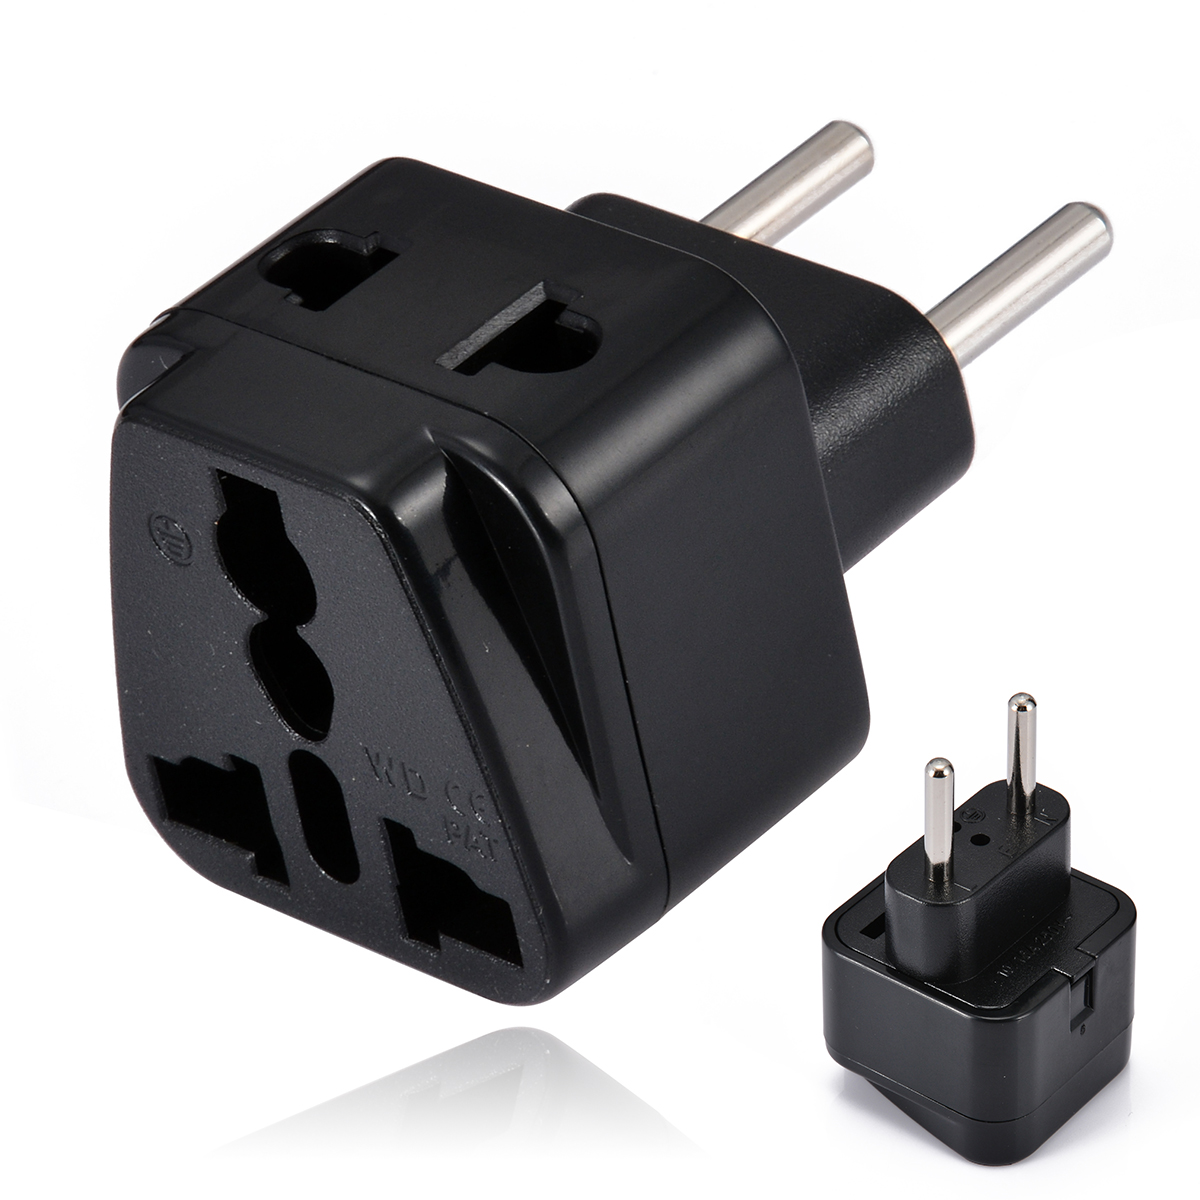 Mayitr 1 to 2 UK/US/EU/AU Outlet to EU/Brazil/Israel Splitter Plug Protable Travel EU Wall Adapter Charger for Electrical Plug